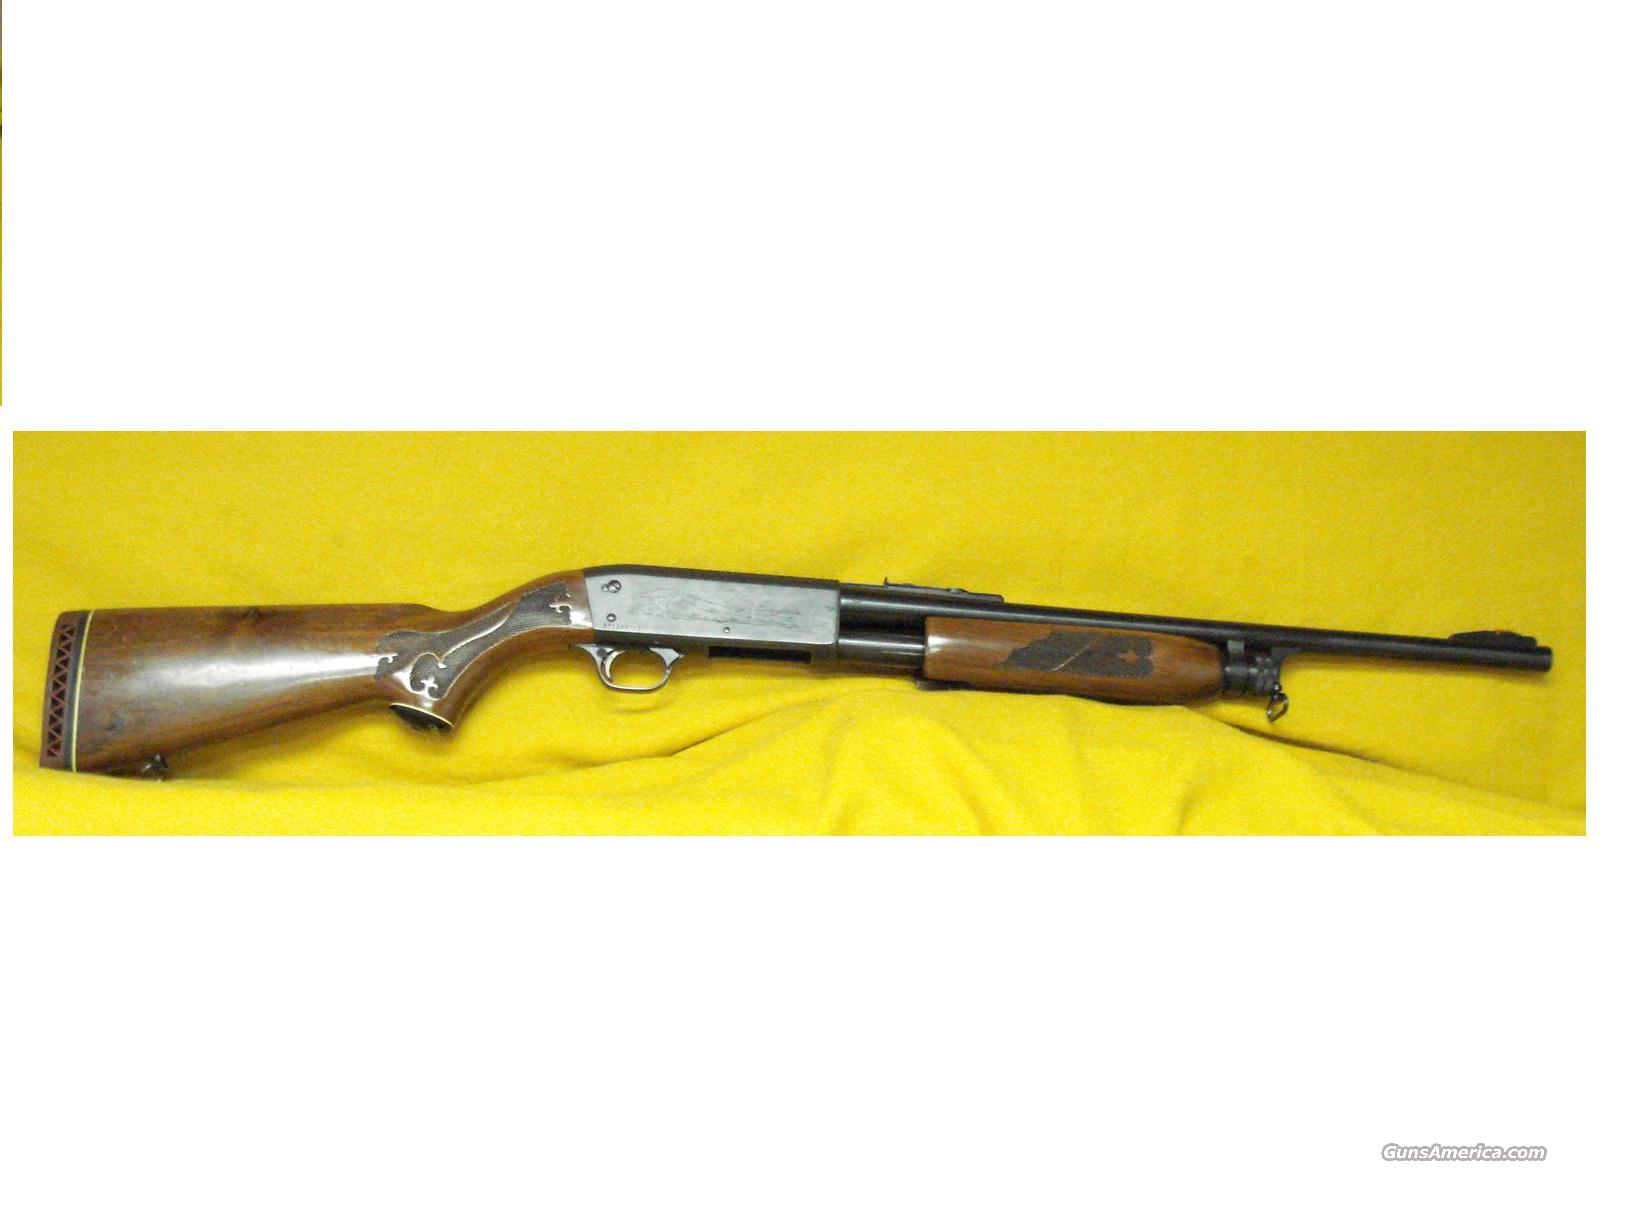 "ITHACA 37 DEERSLAYER 16GA 20""FIXED CHOKE  Guns > Shotguns > Ithaca Shotguns > Pump"